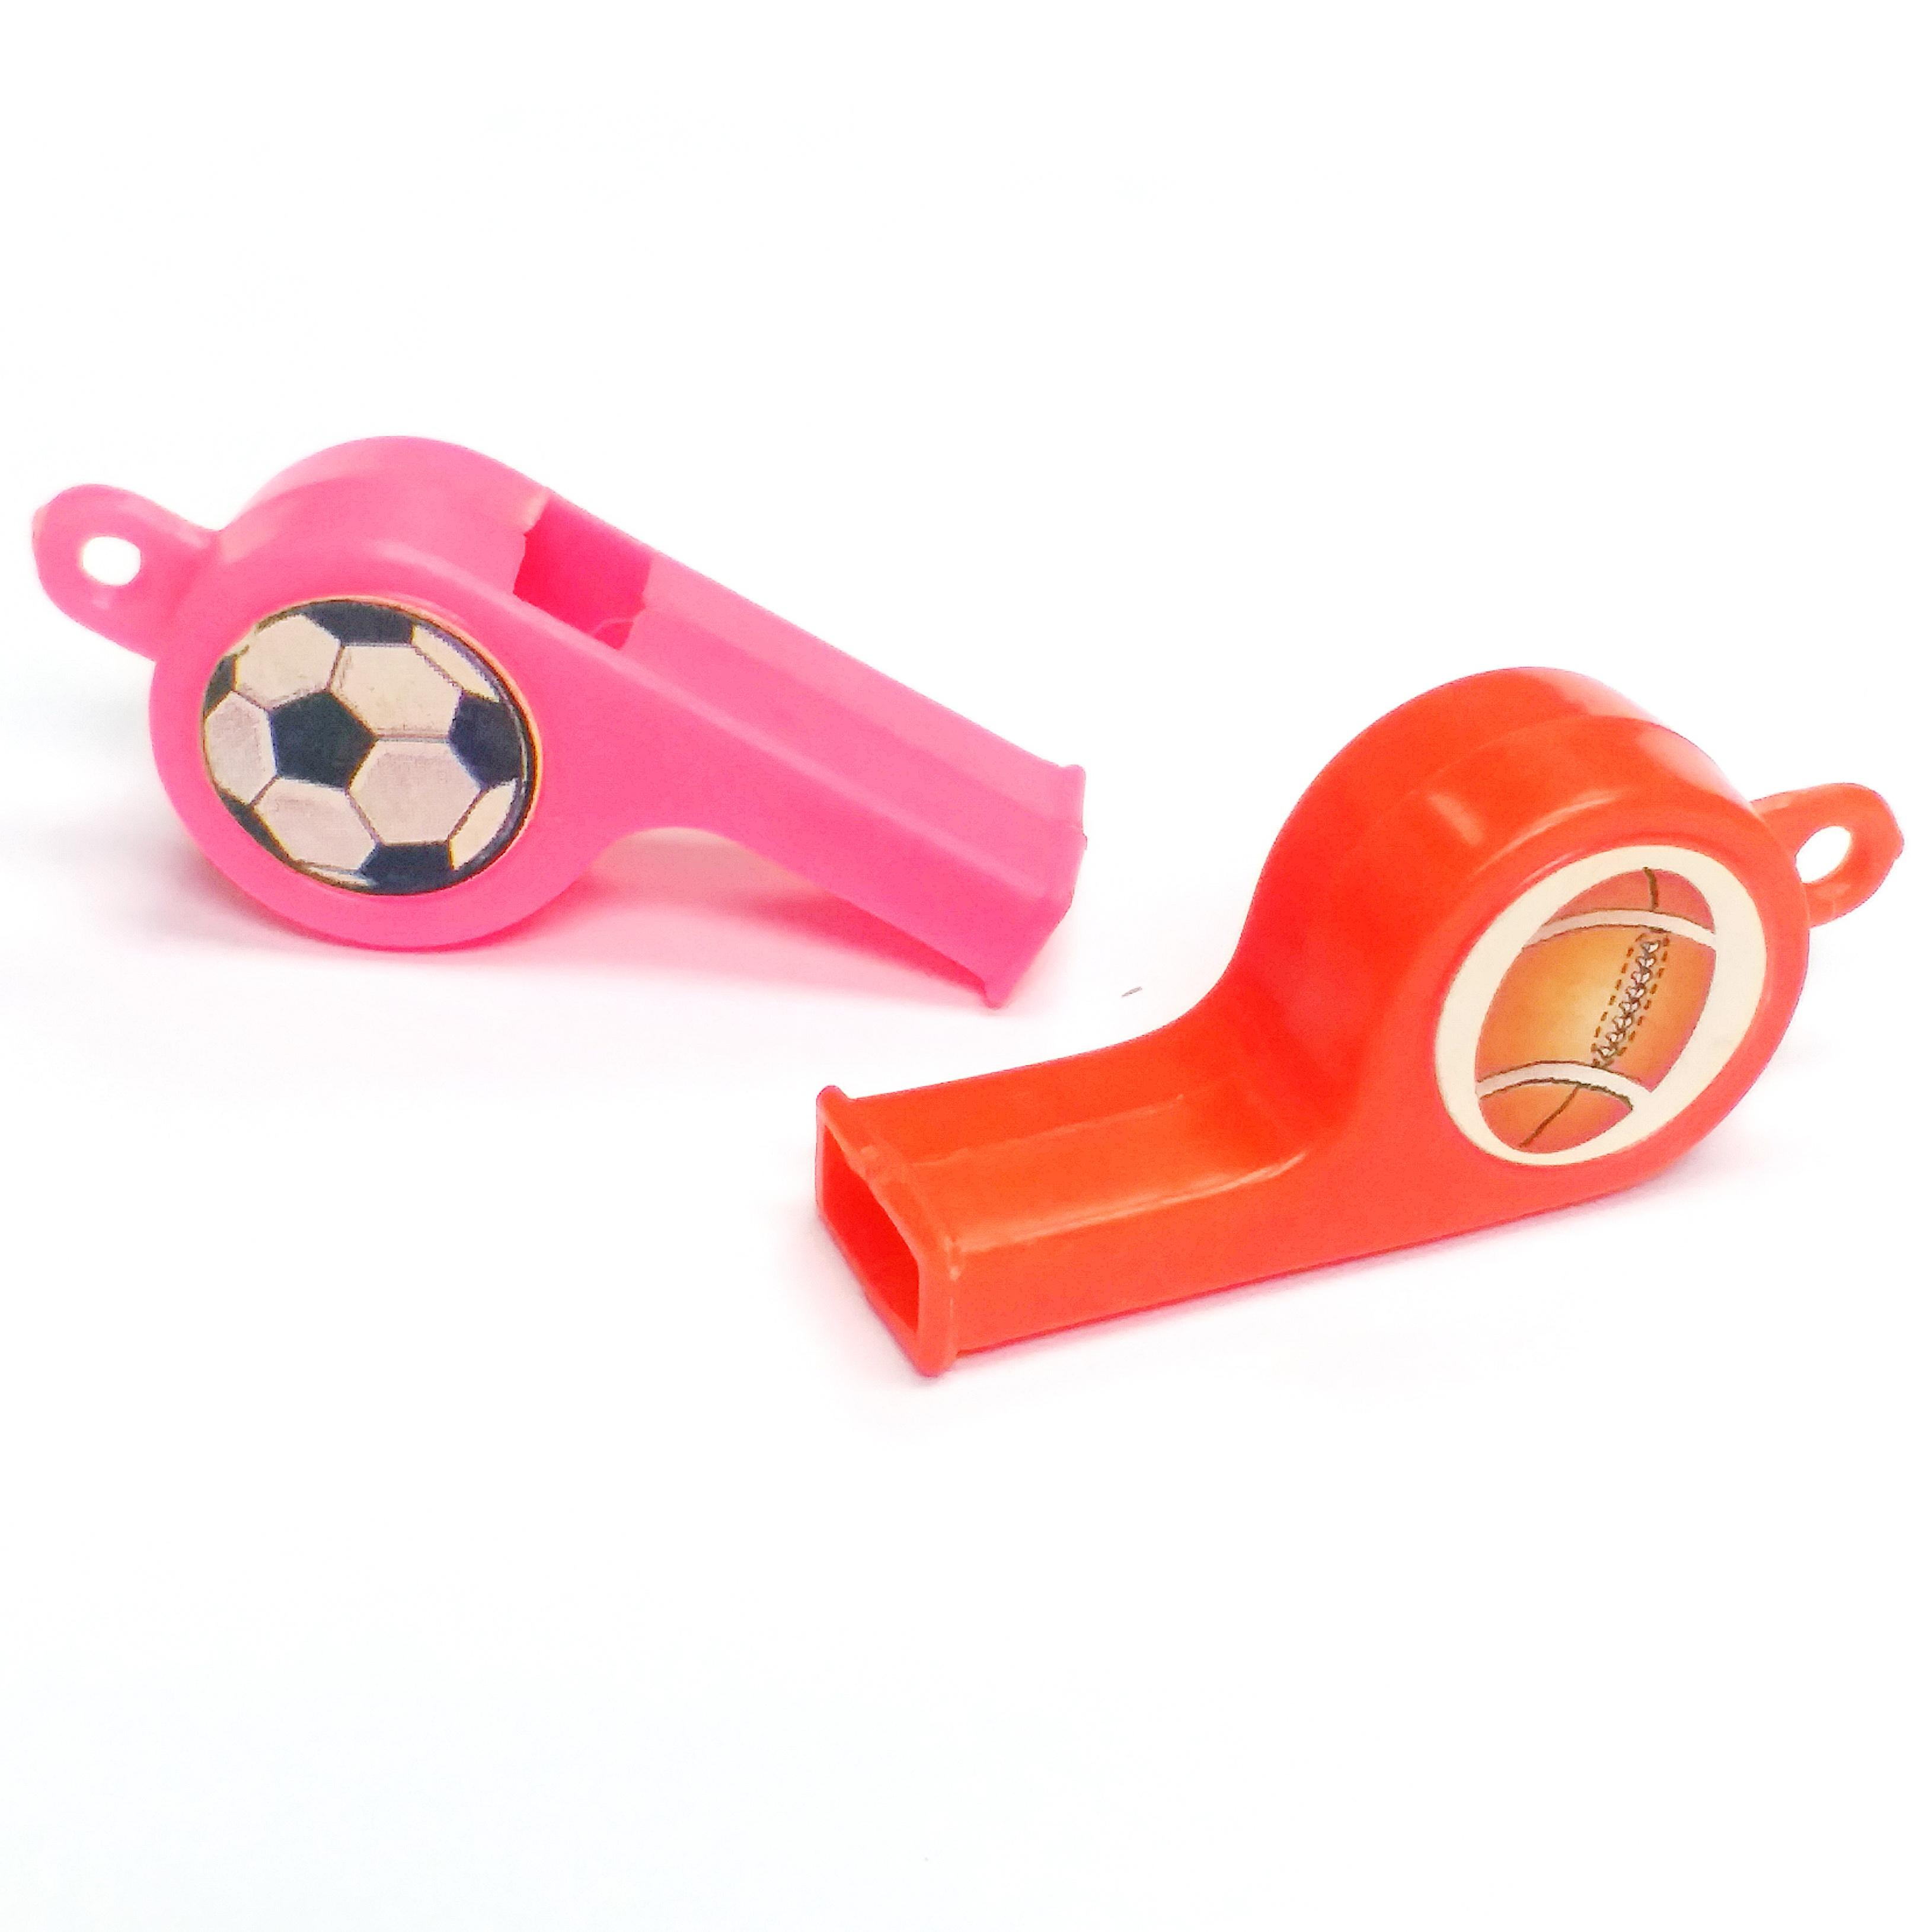 ball Whistle E302 Noise Sound Maker Pinata Loot Party Bag Fillers Kid Novelty Ideal Birthday Game Gift Favors Toys Prize